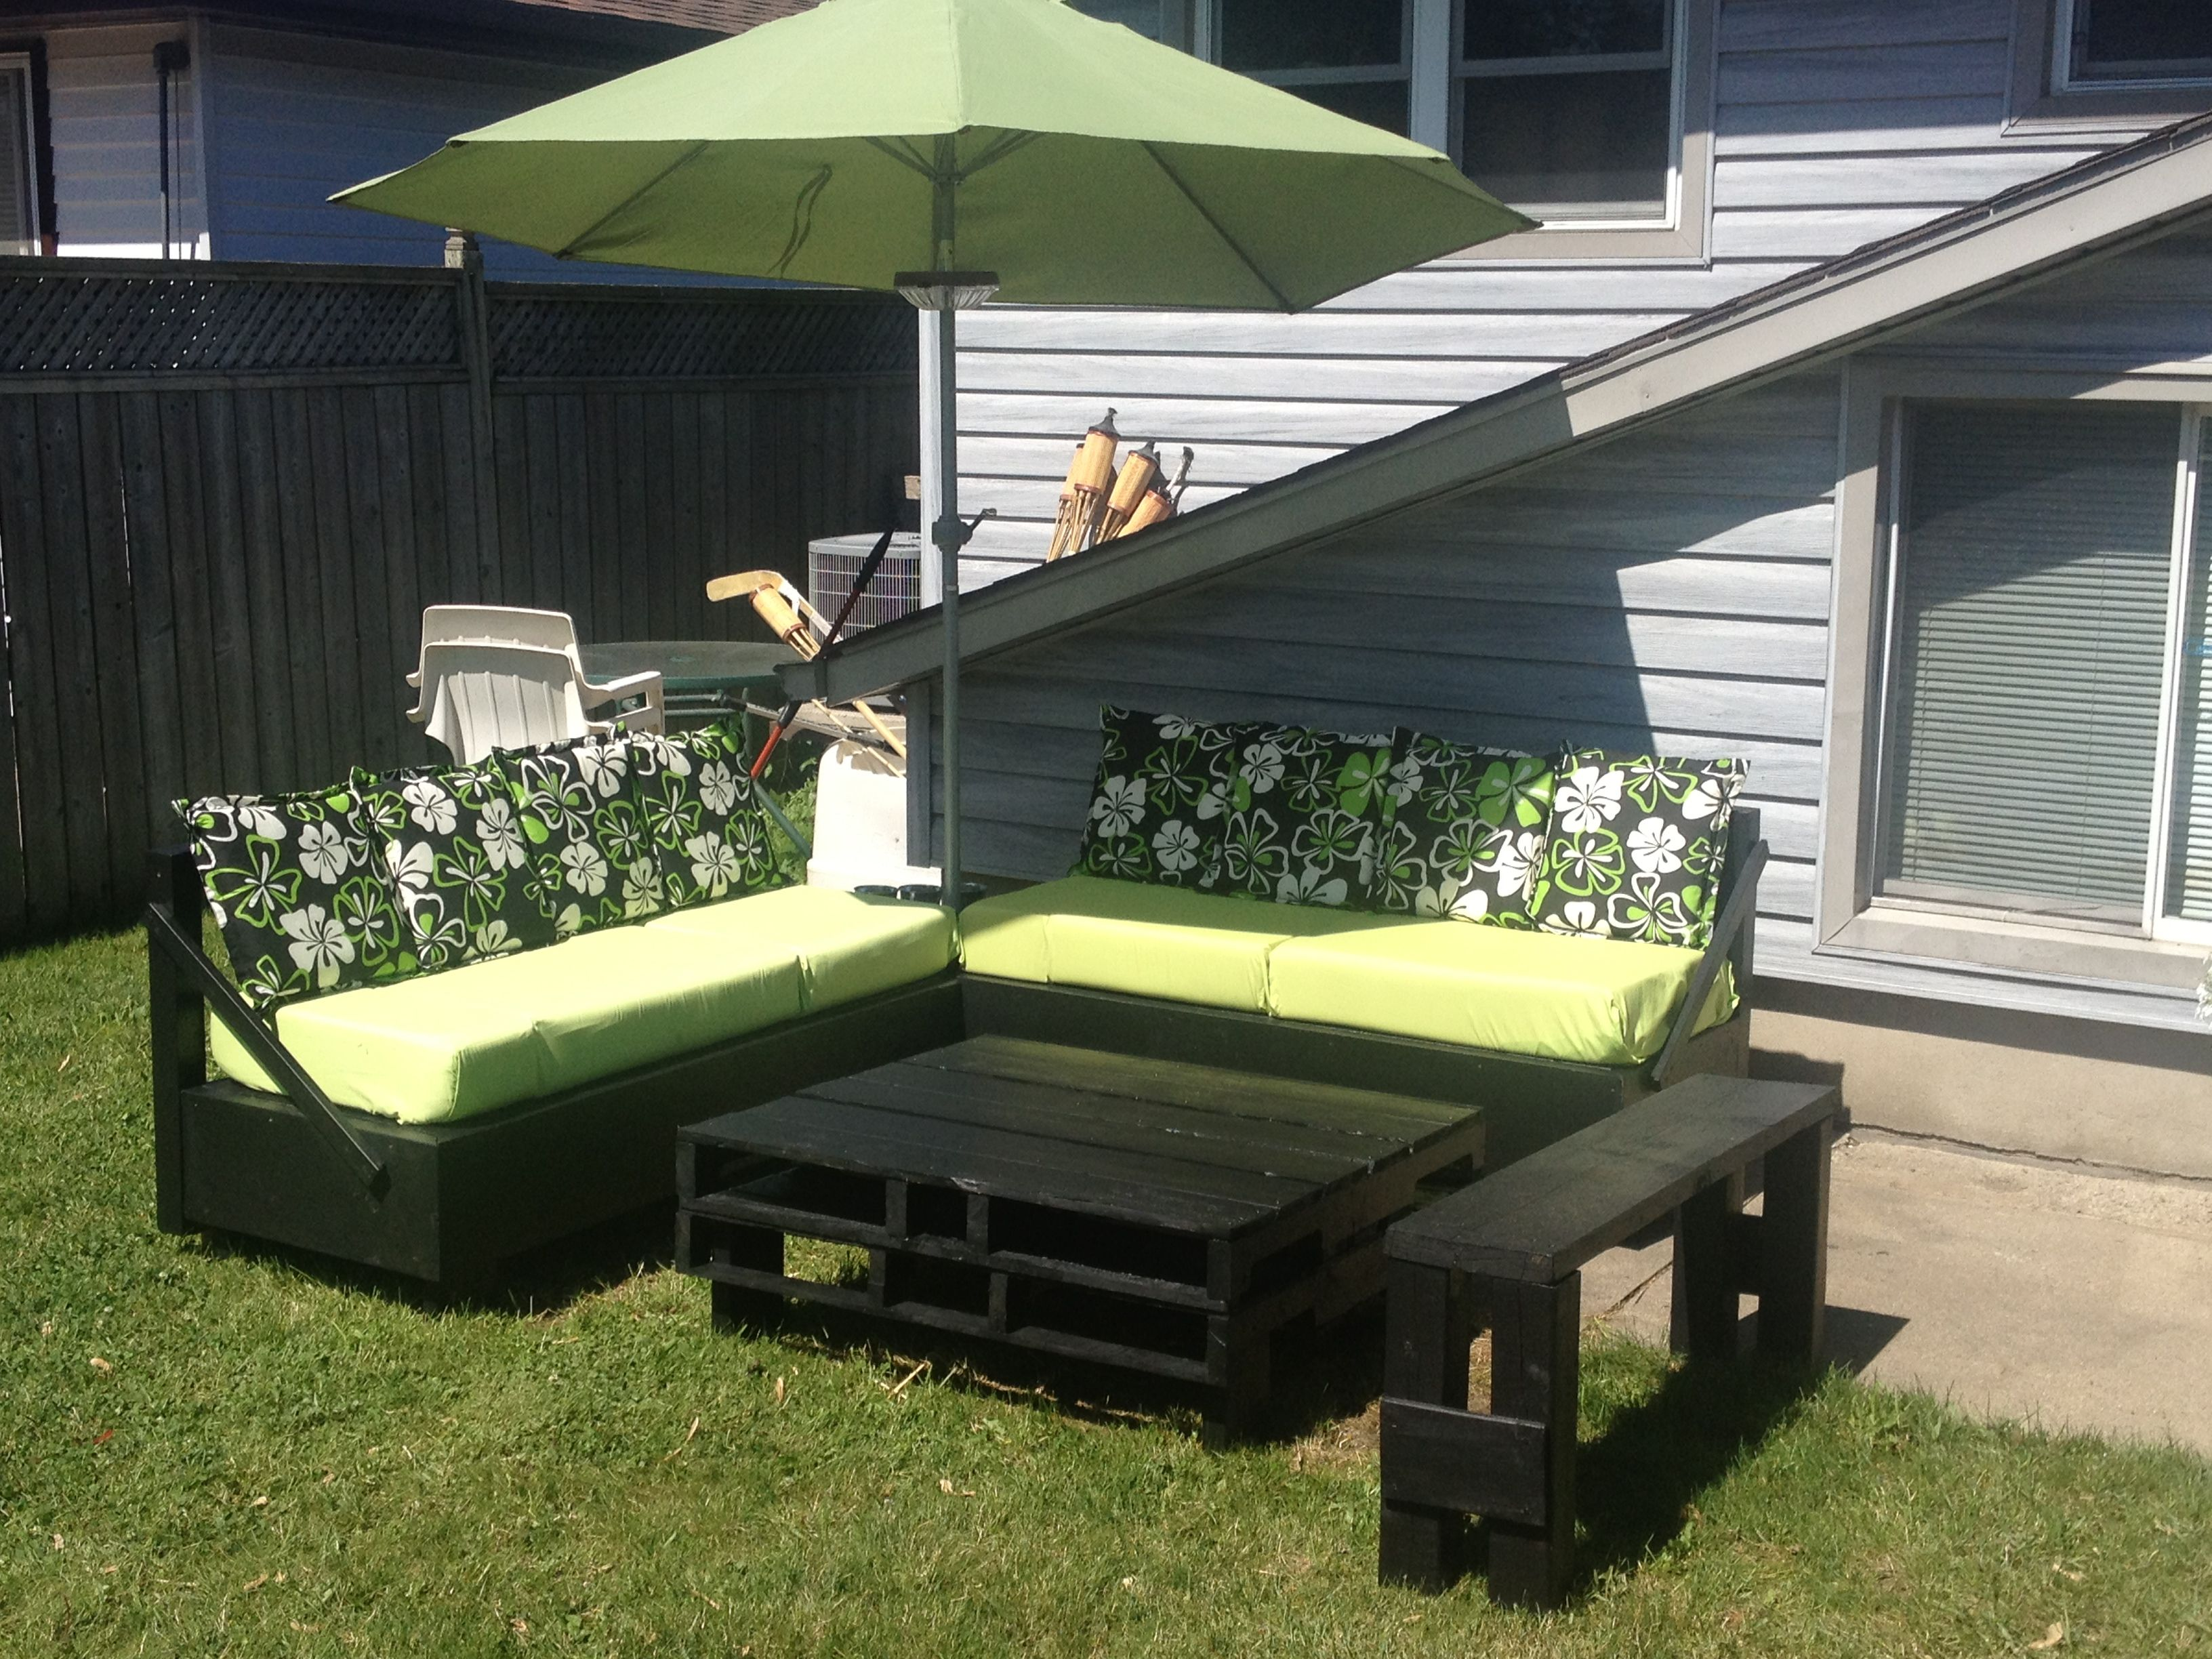 Homemade patio furniture my husband and i made a lot of for Patio furniture pictures ideas